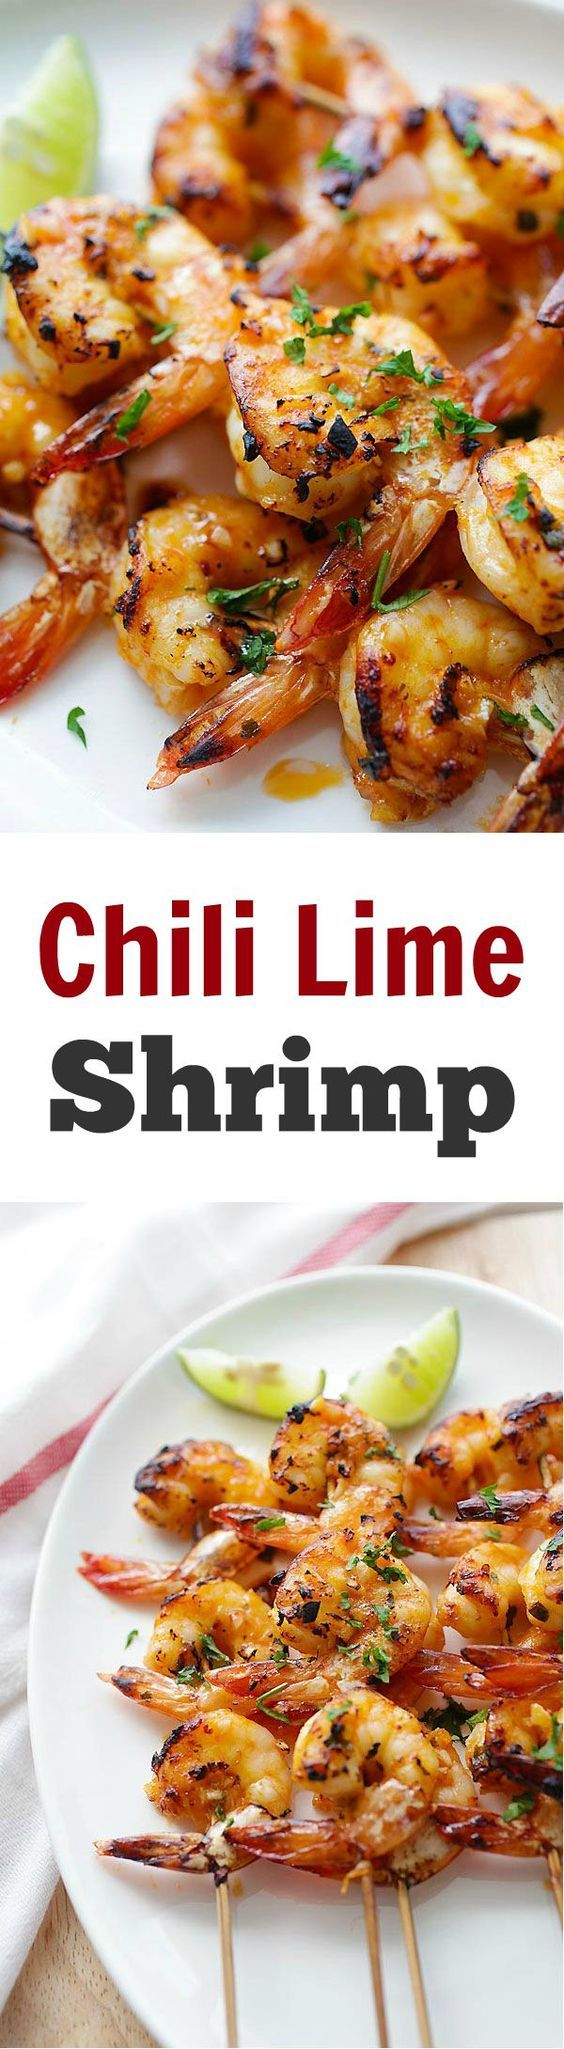 Excellent For Shrimp Tacos!Chili Lime Shrimp - juicy and succulent shrimp marinated with chili and lime and grill.: